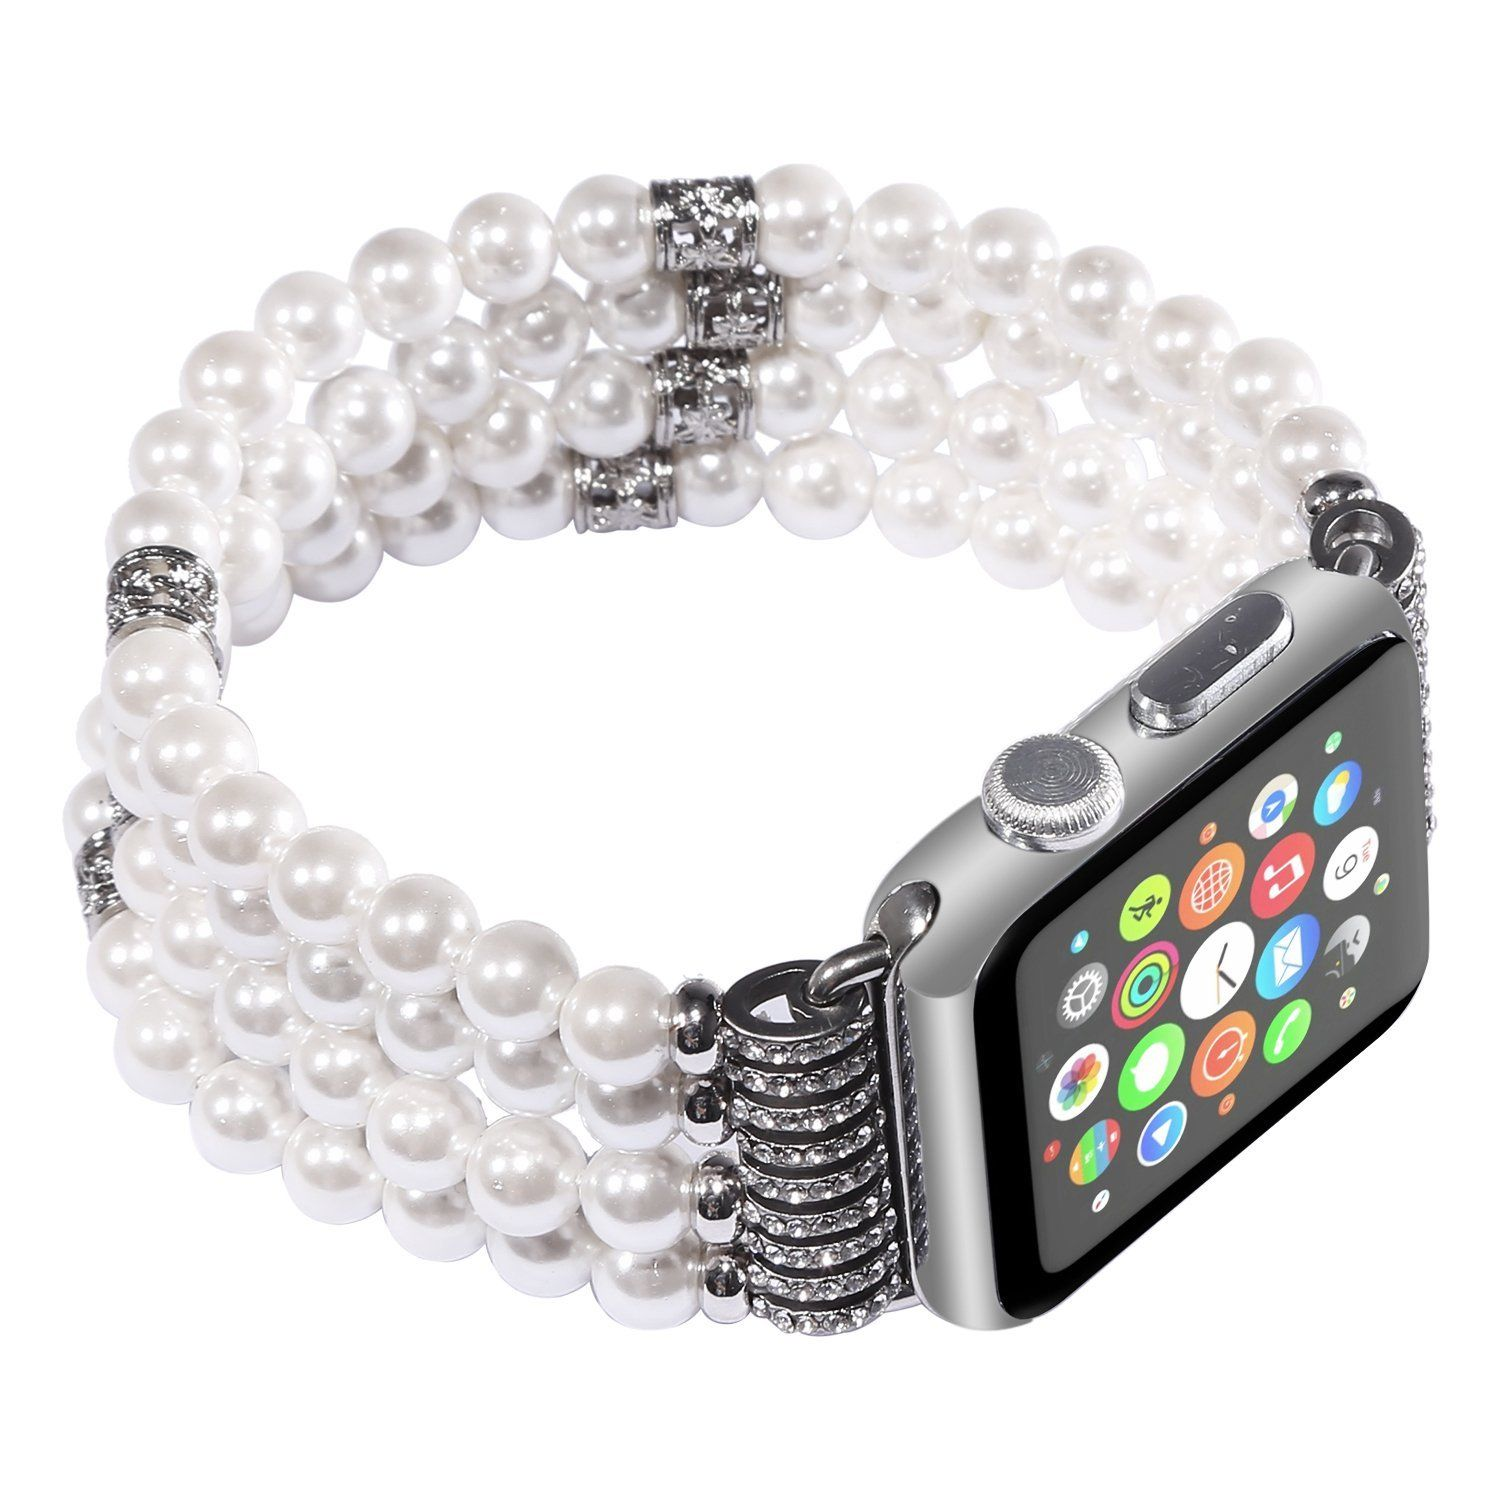 Pearl Beads Bracelet Watch Band Strap for Apple Watch iWatch Series 1 2 38/42mm